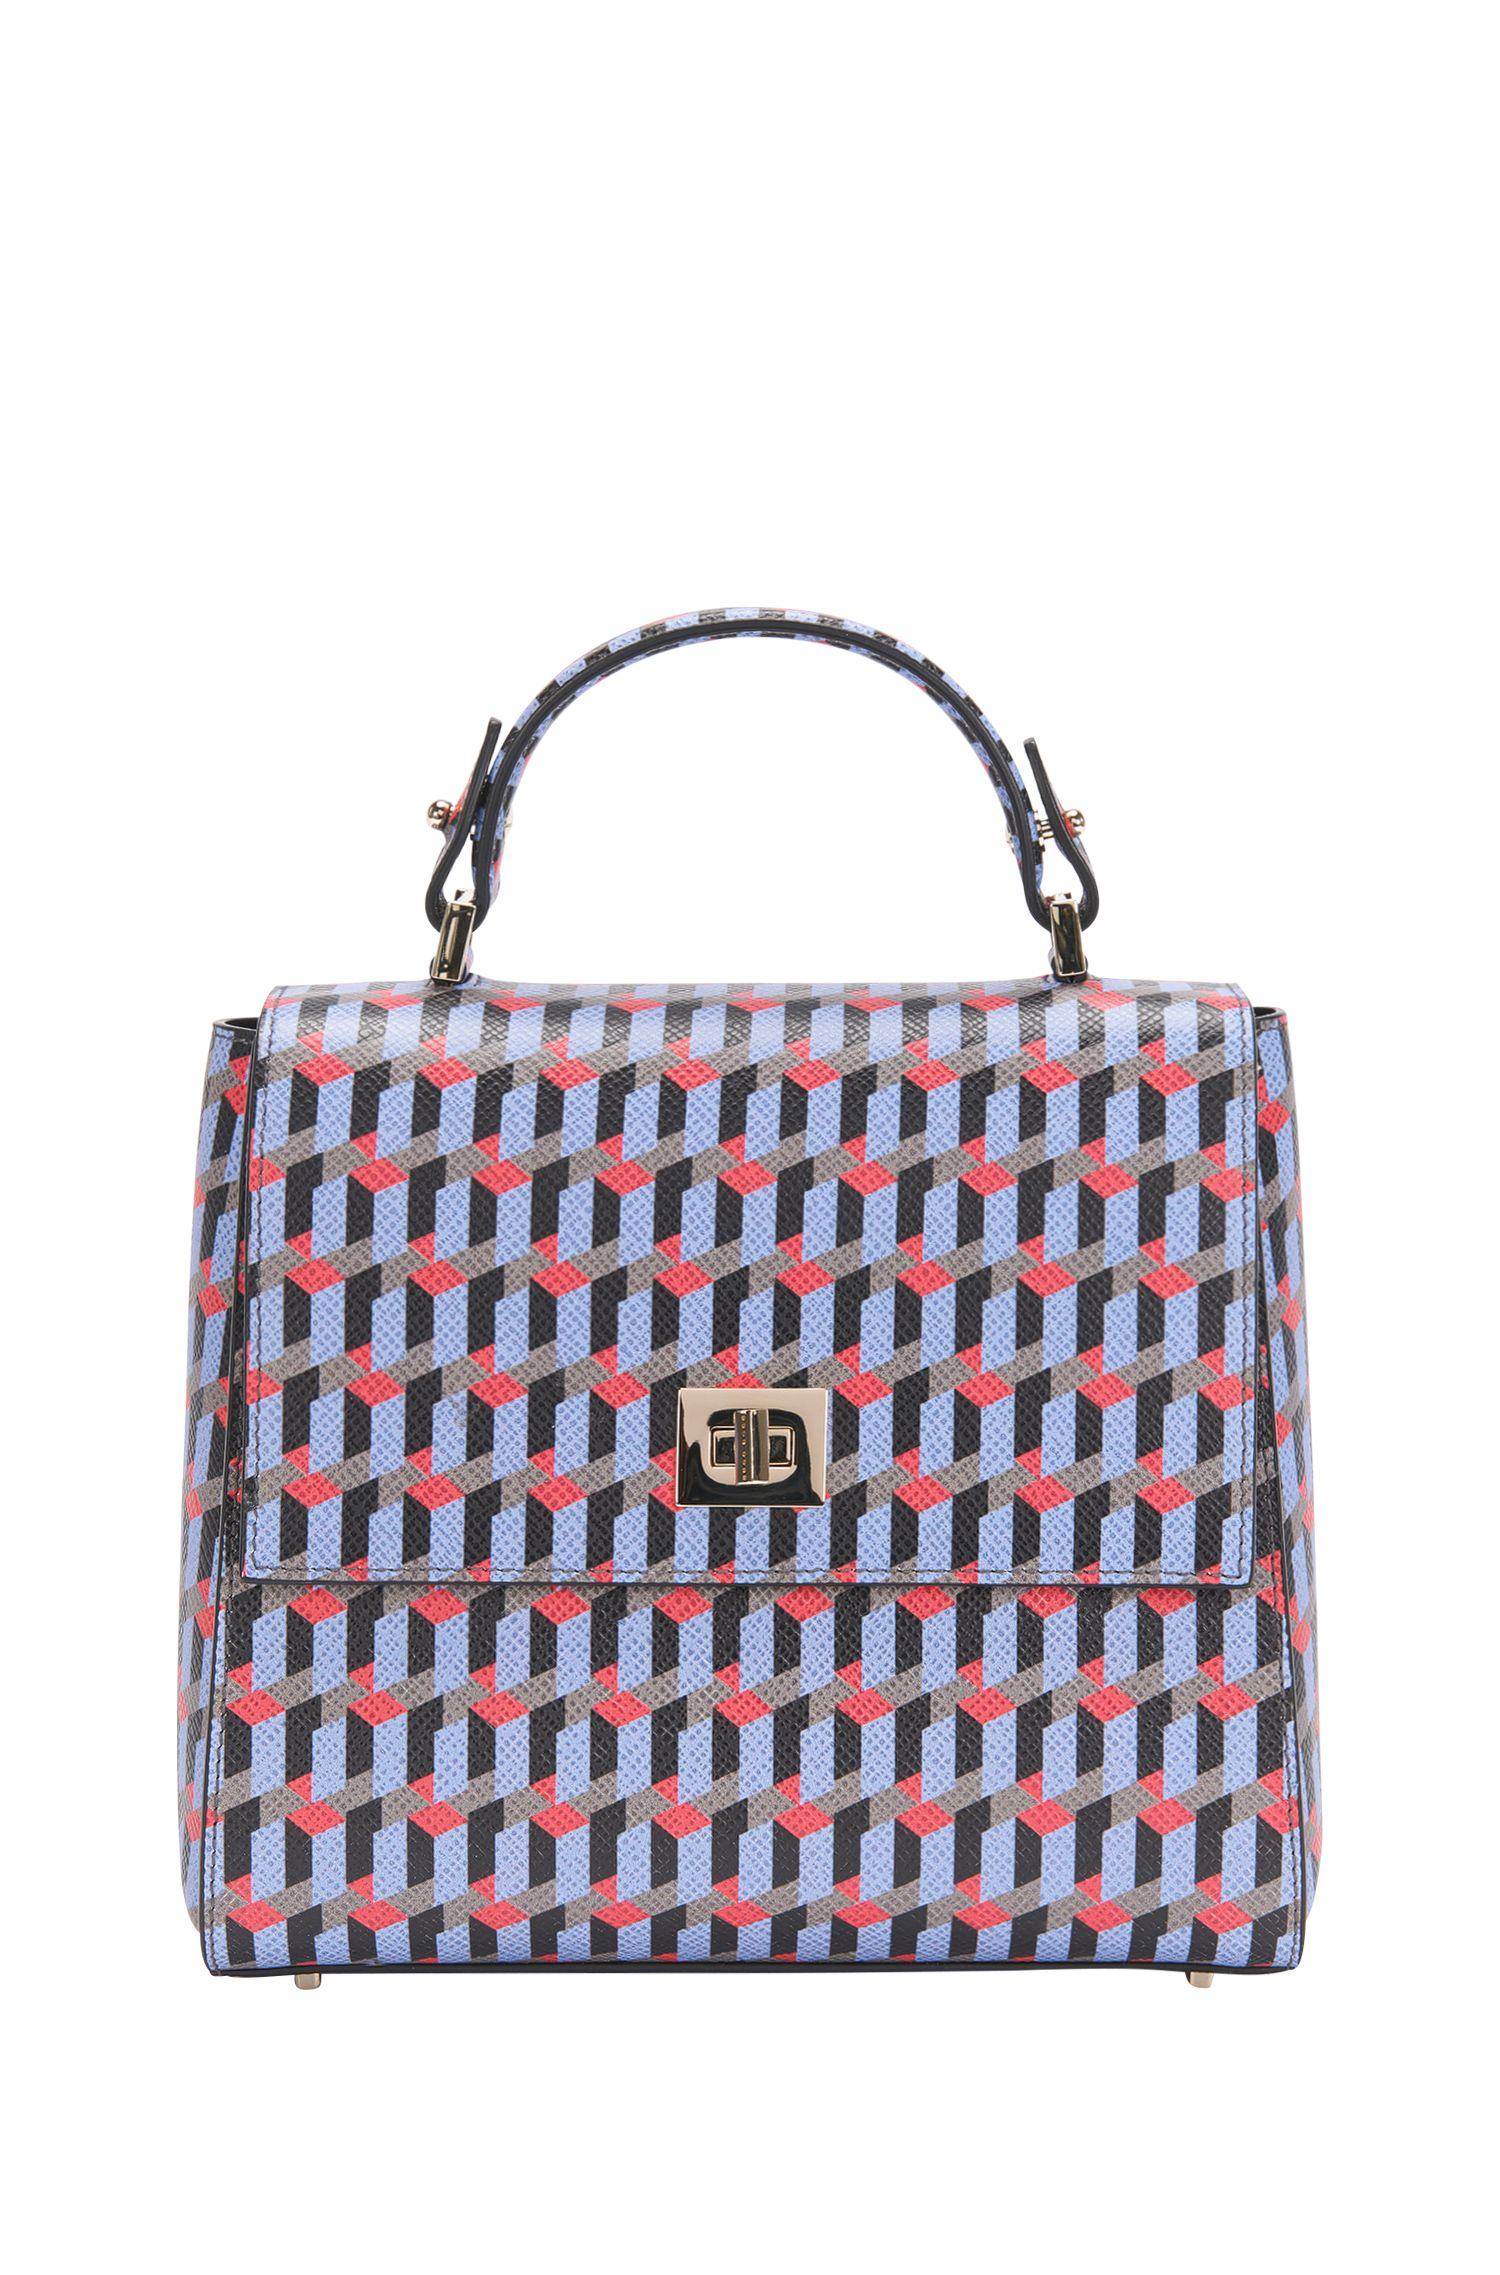 Patterned BOSS Bespoke handbag in leather